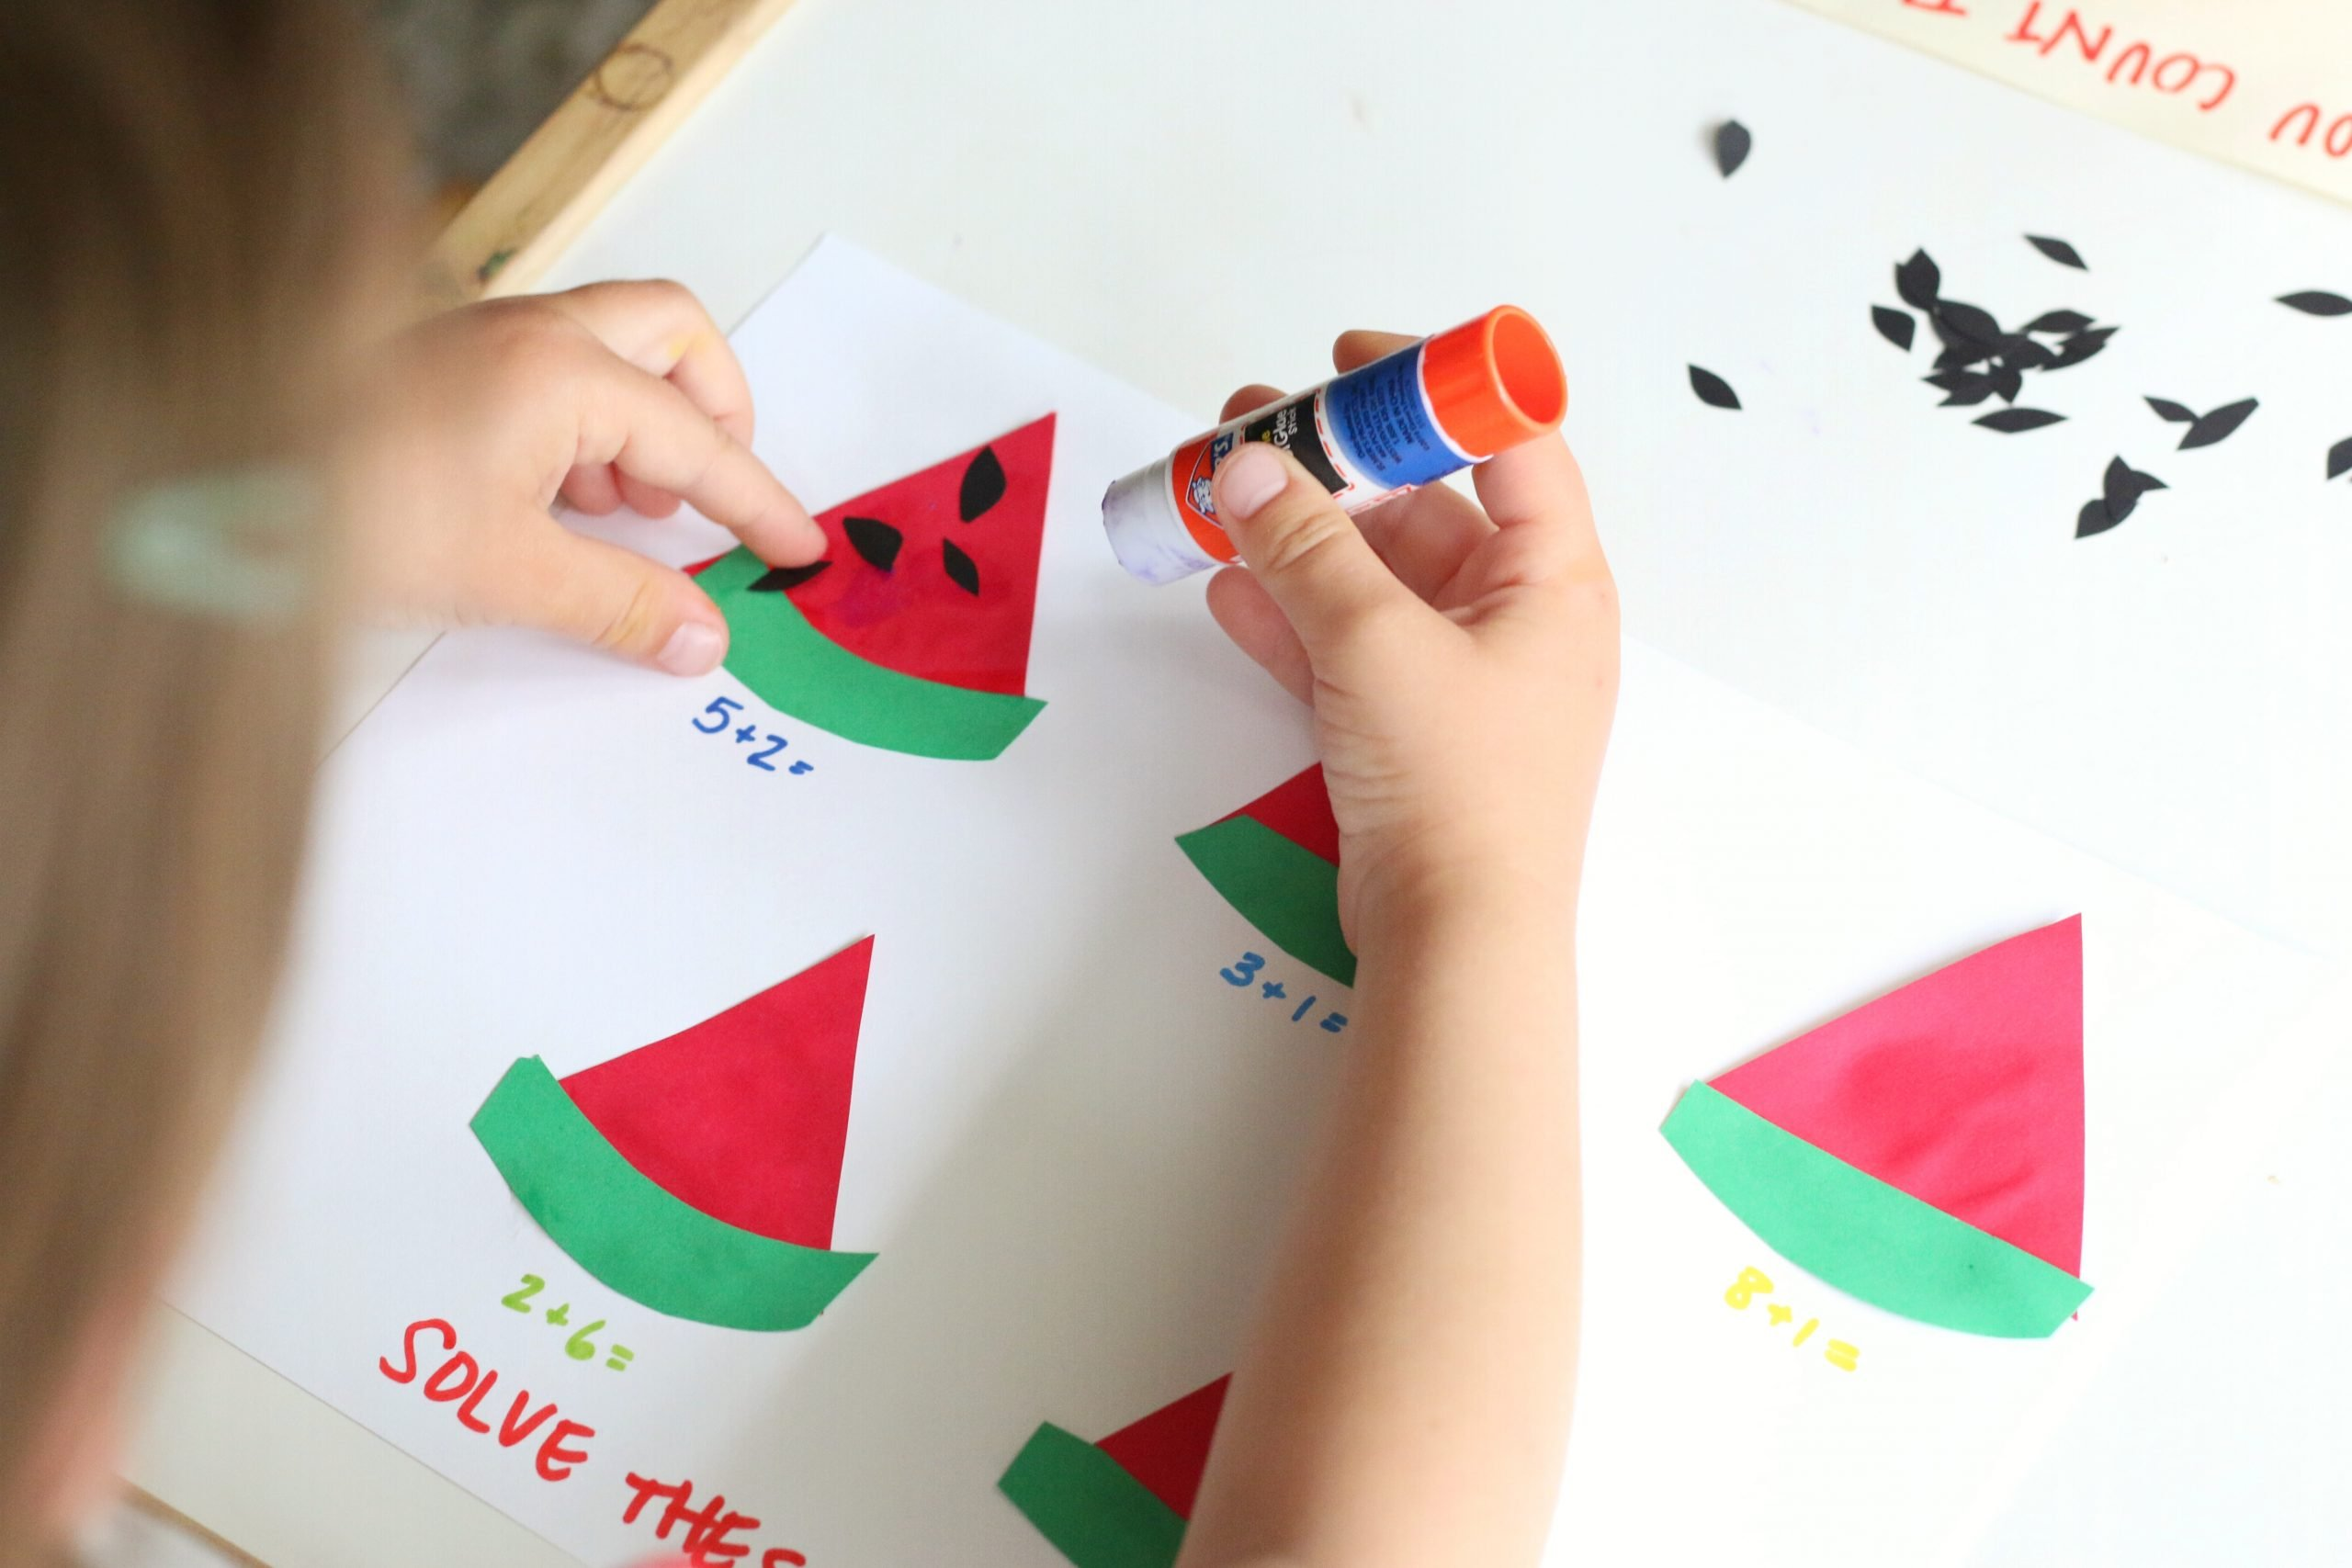 Watermelon Seed Math Problem Activity